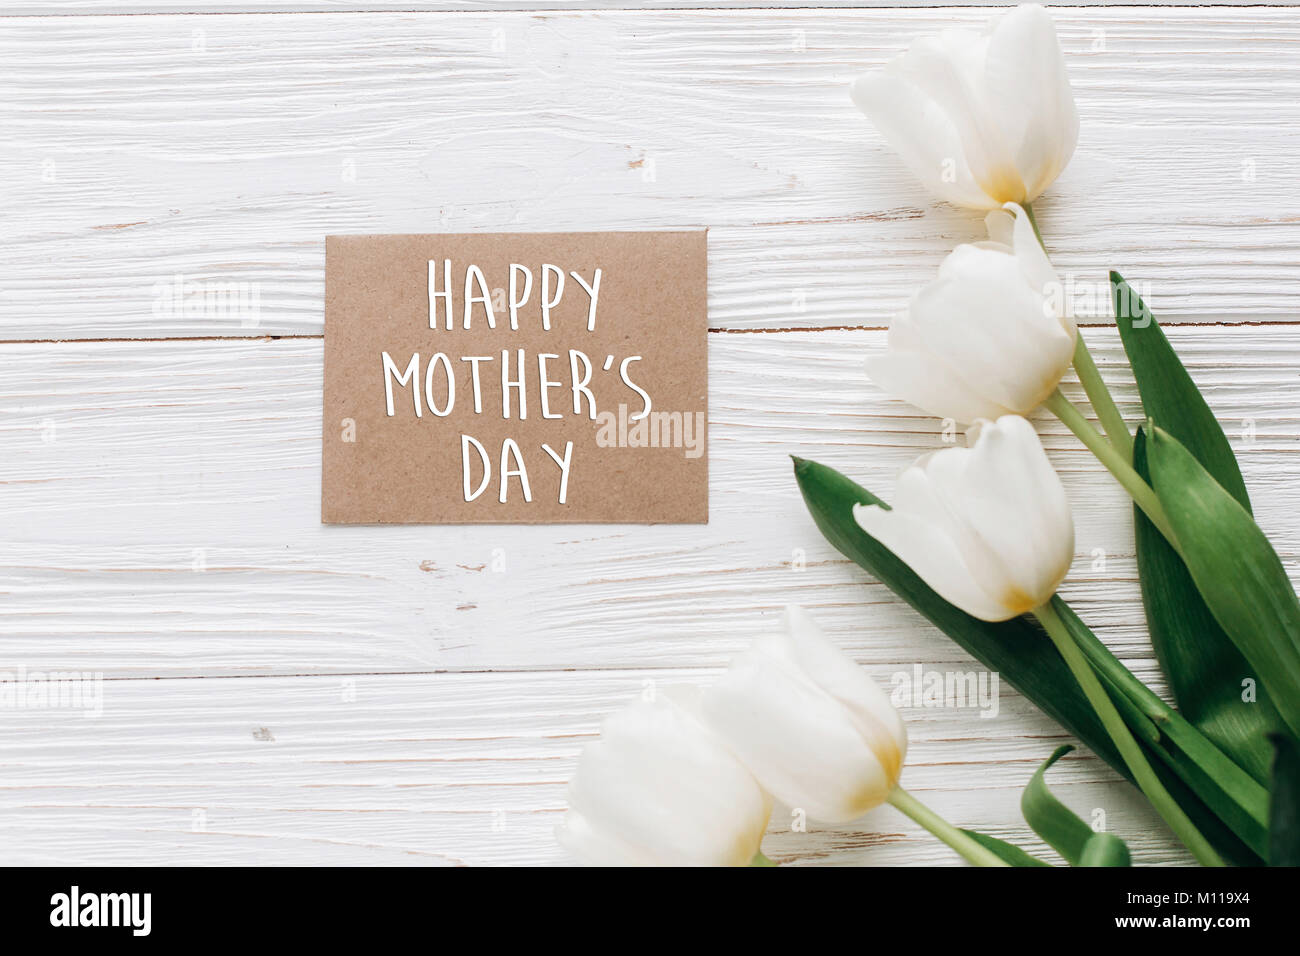 Happy mothers day text sign on stylish greeting card and tulips on happy mothers day text sign on stylish greeting card and tulips on white wooden rustic background flat lay with flowers and gift blank paper with spa kristyandbryce Choice Image